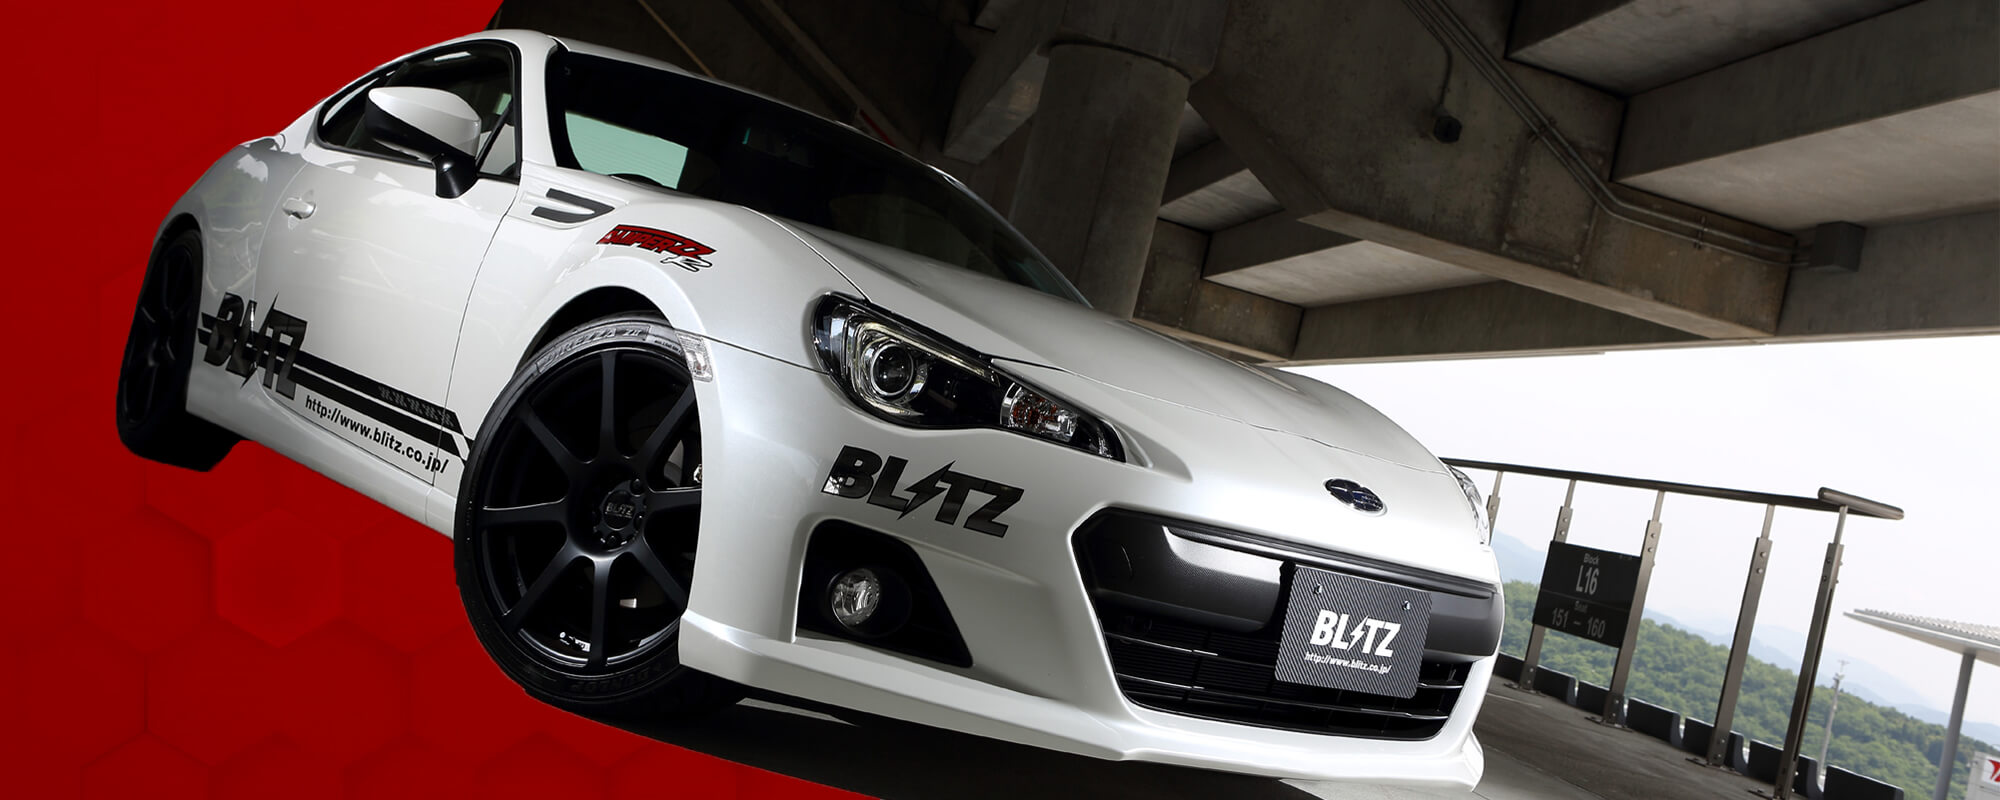 Stylist High Performance Racing & Street Parts from Japan